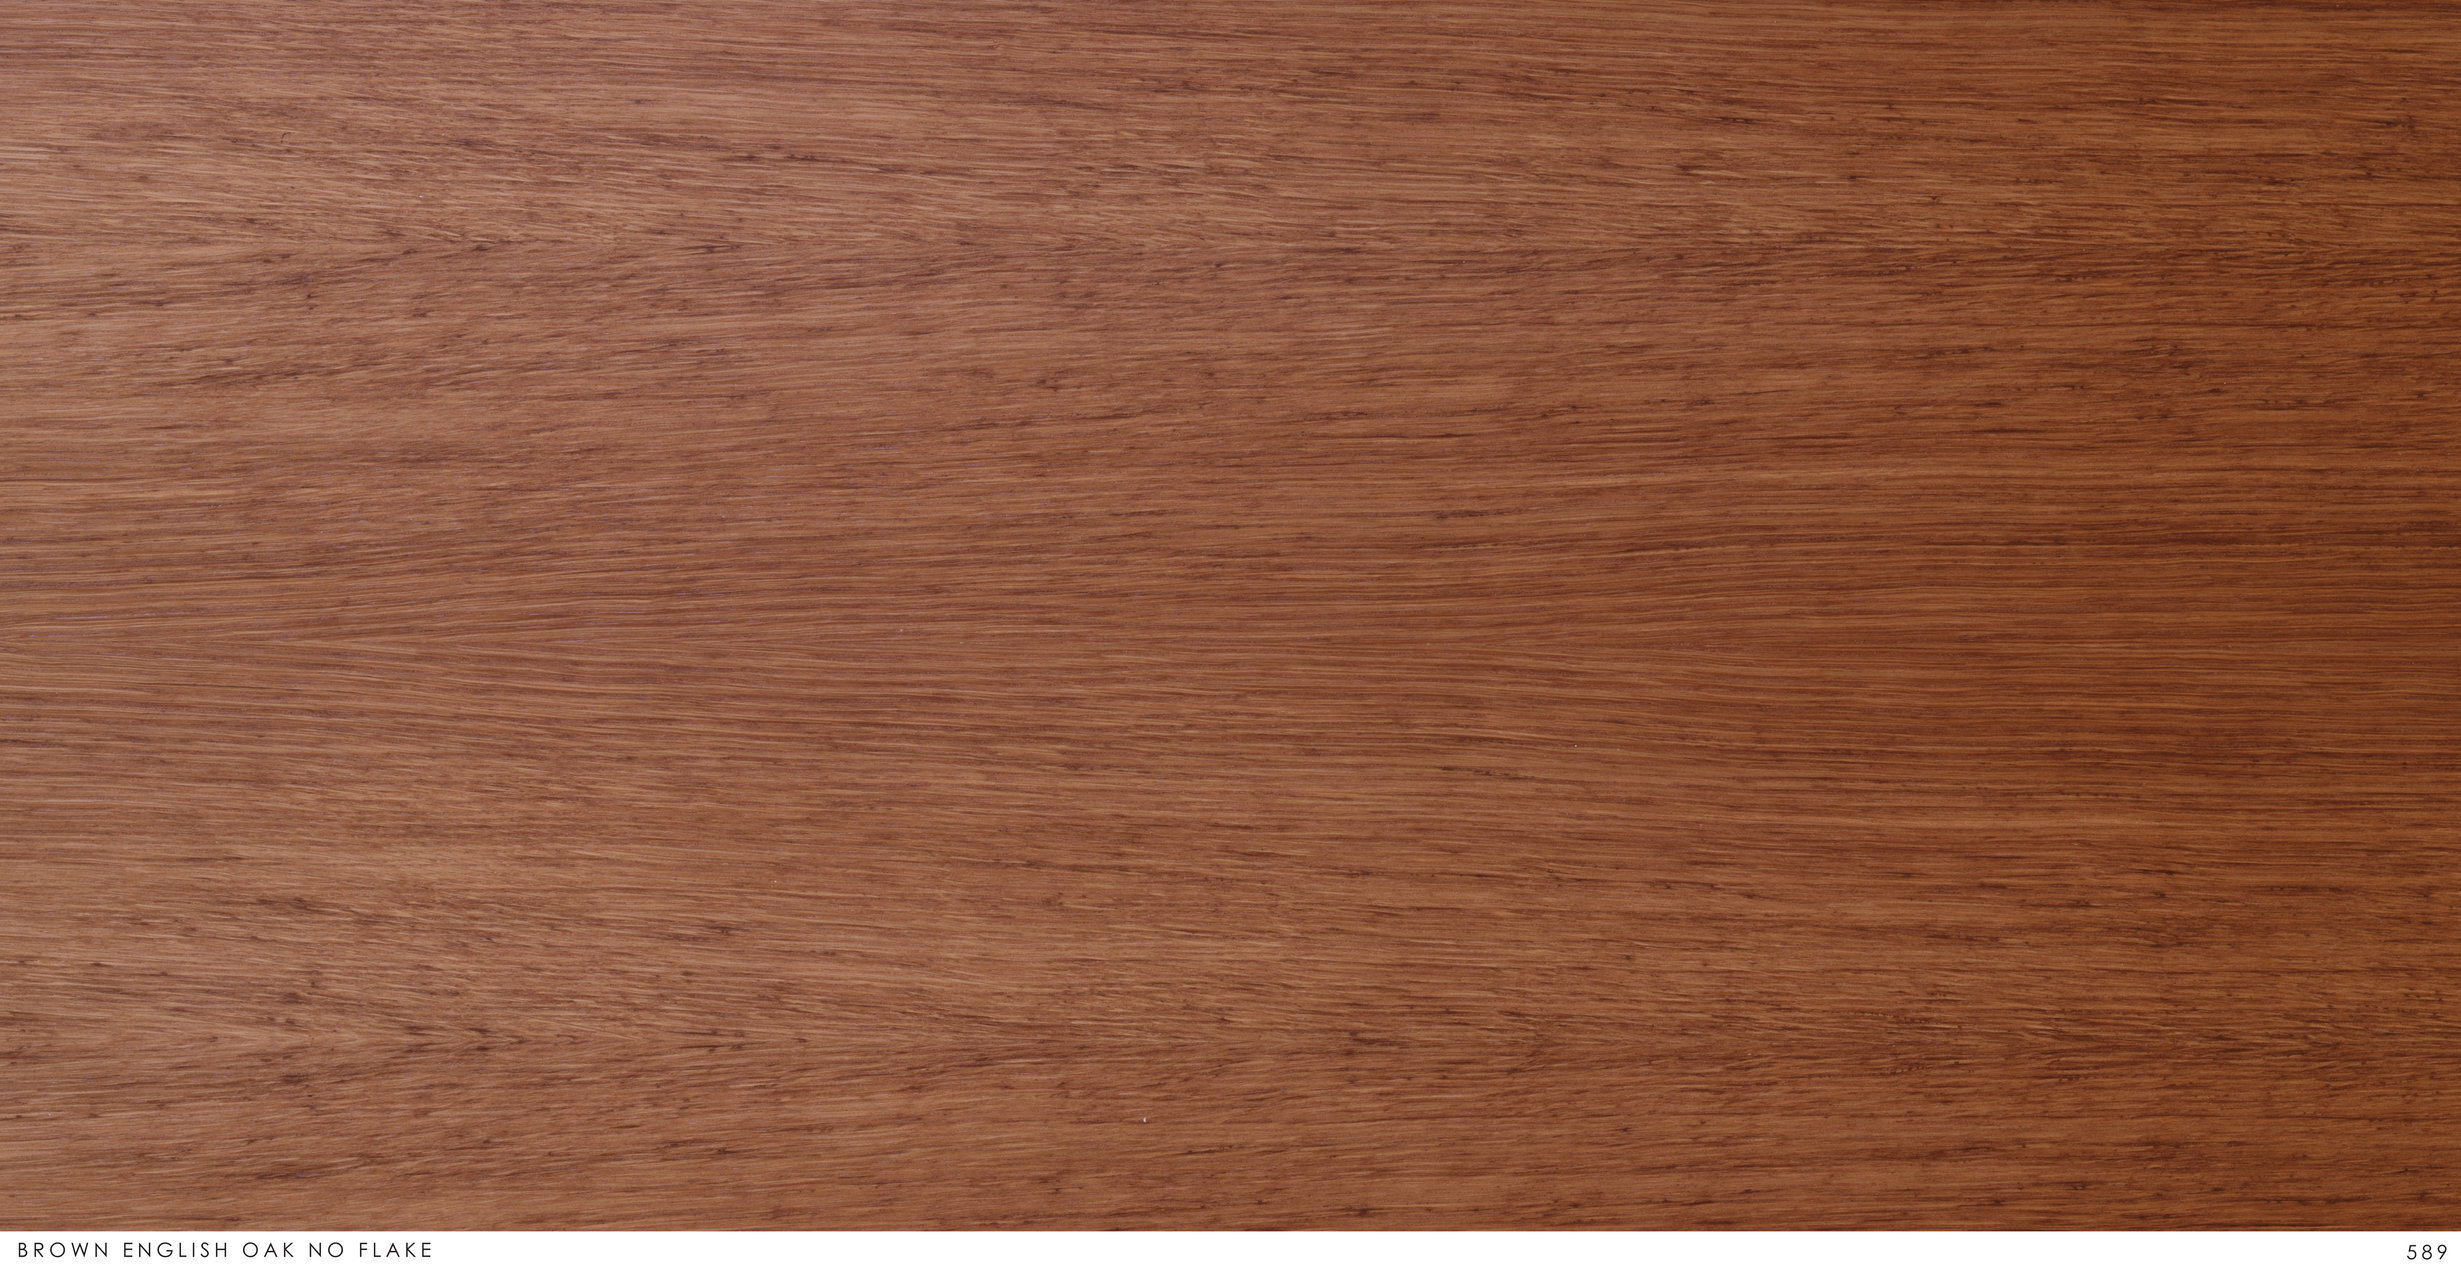 BROWN ENGLISH OAK NO FLAKE 589.jpg